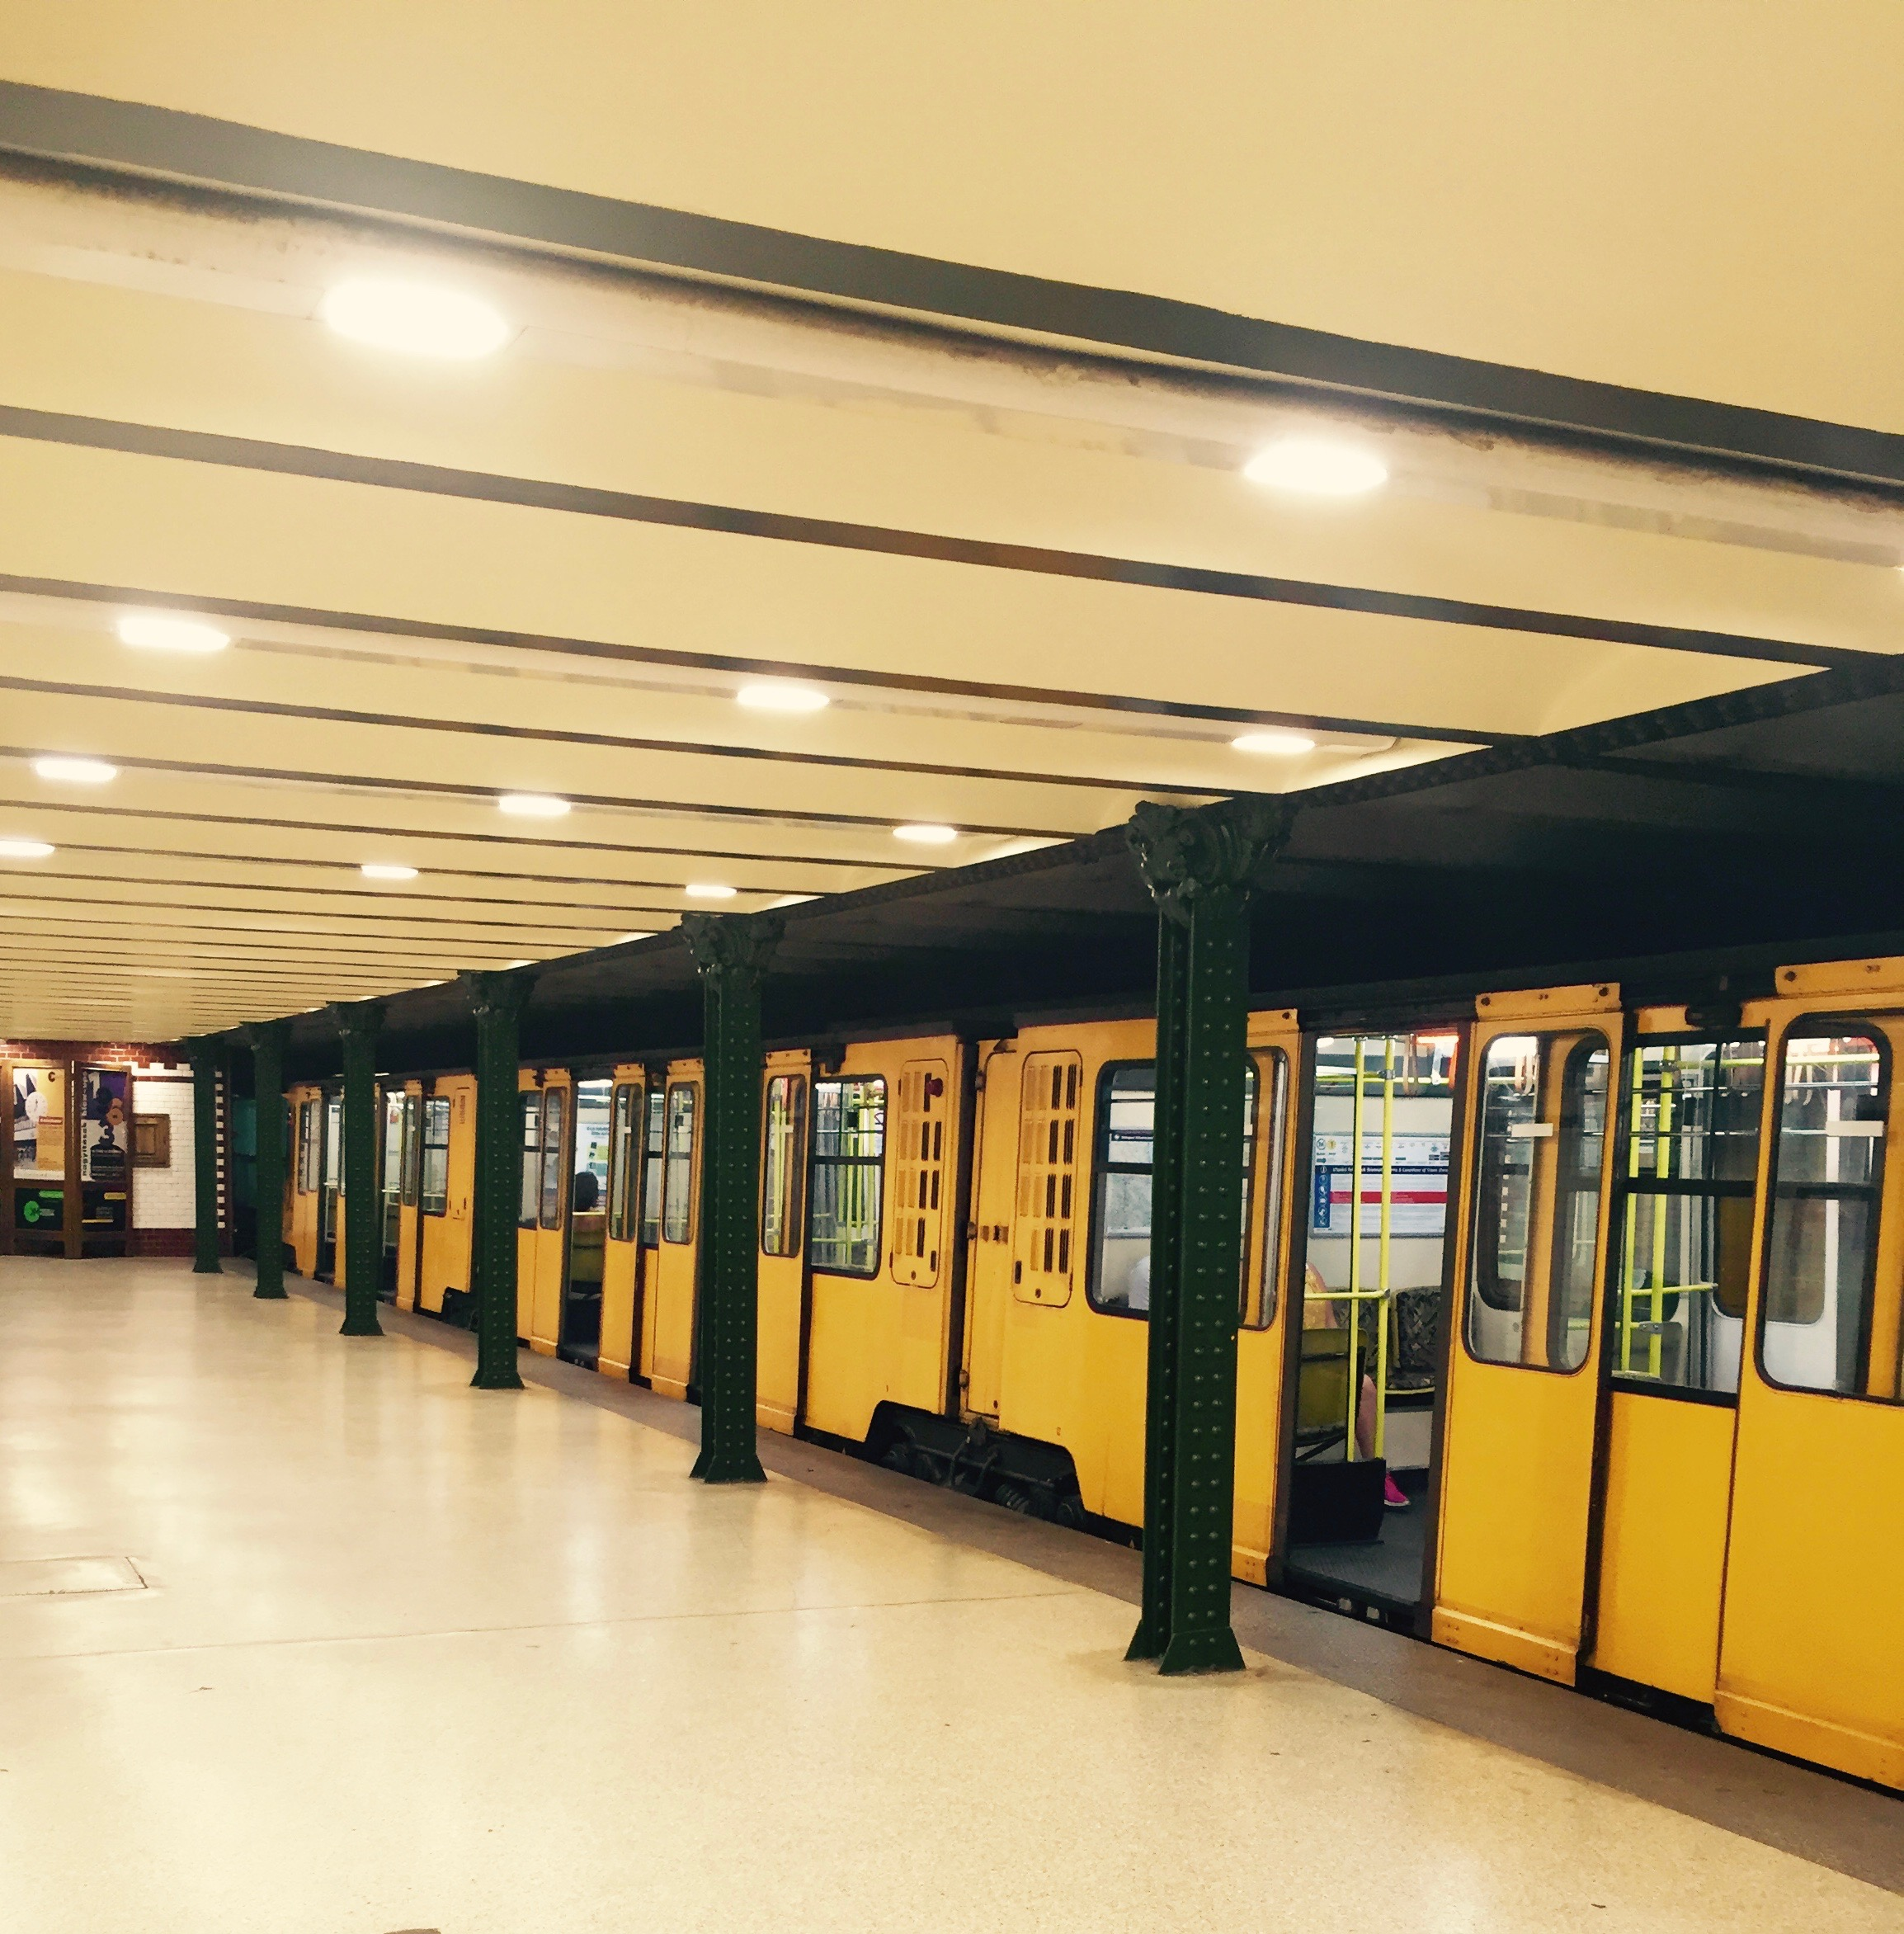 I loved riding the trains in Budapest!